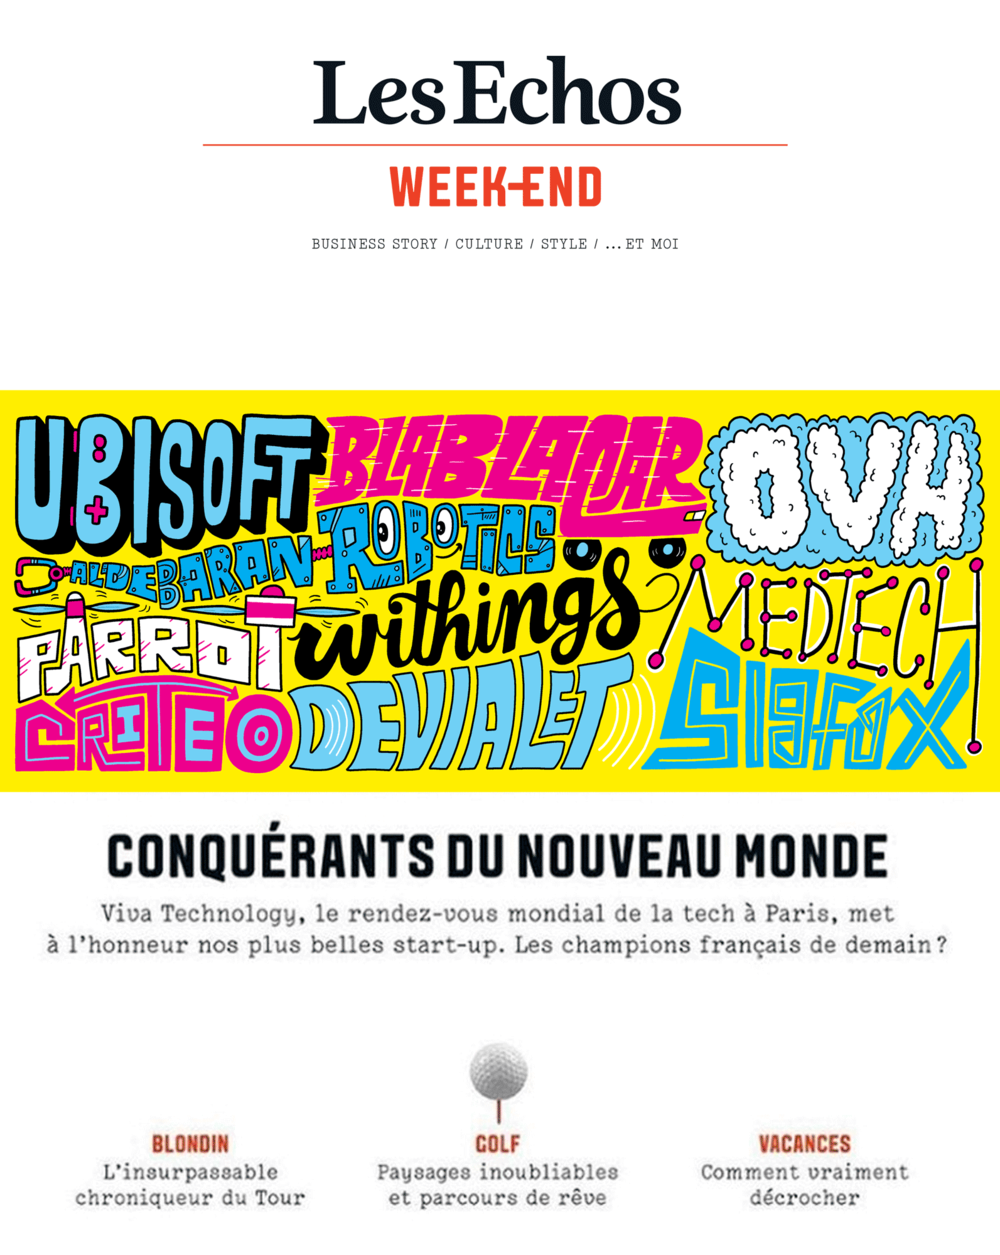 LesEchosWeekend-Conquerants-cover.png